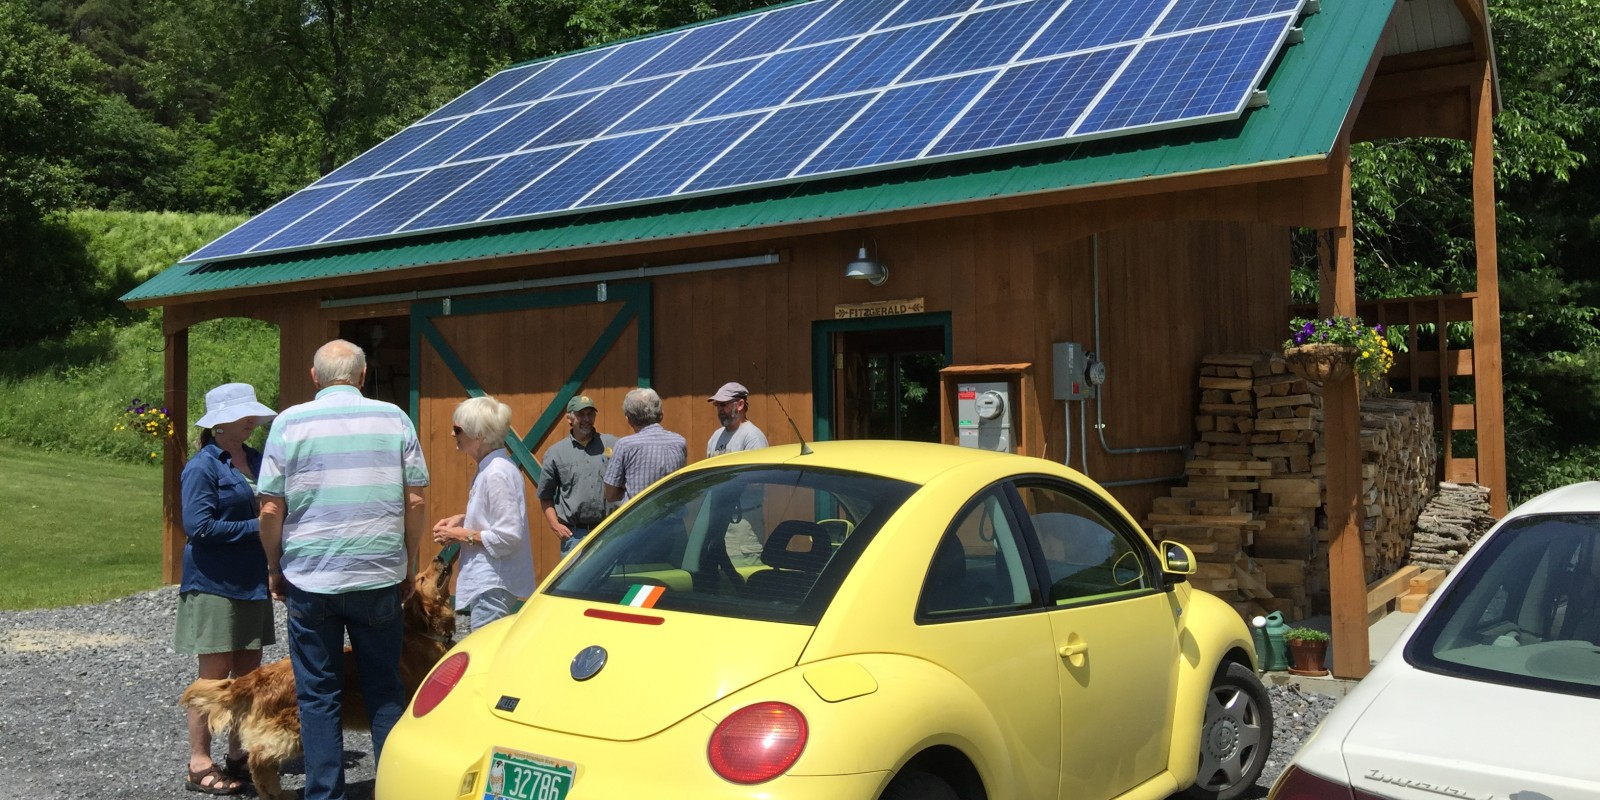 Homeowners, Neil and Theresa Fitzgerald, along with Dan Kinney of Catamount Solar, talking with neighbors about the solar project.